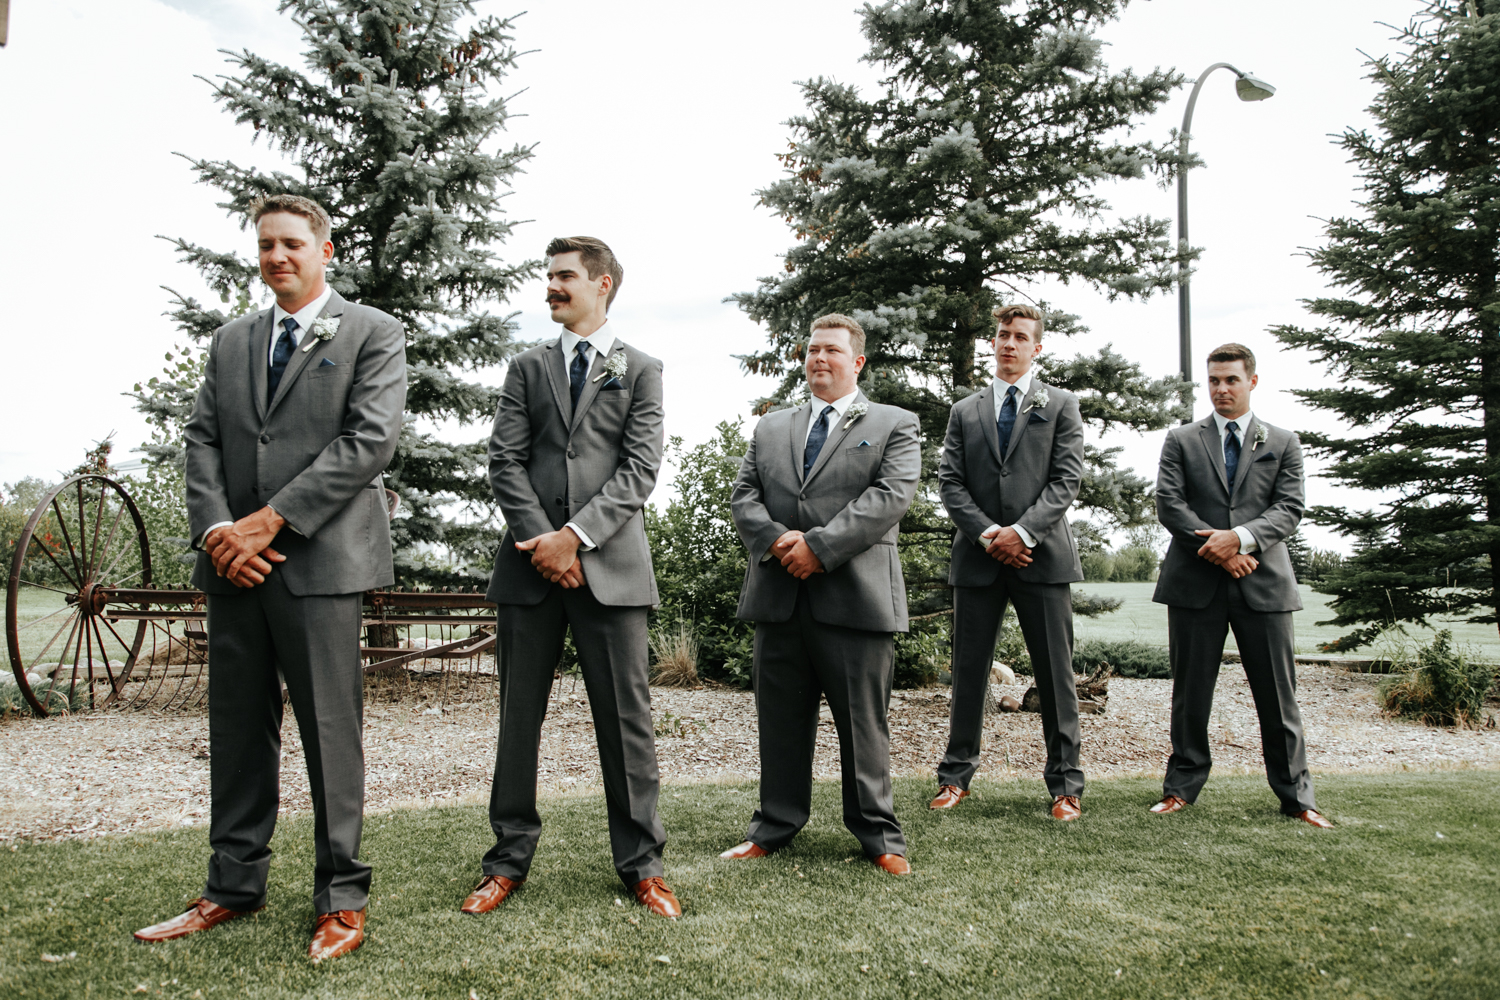 lethbridge-photographer-readymade-community-centre-wedding-coaldale-bailey-joel-picture-image-photo-14.jpg